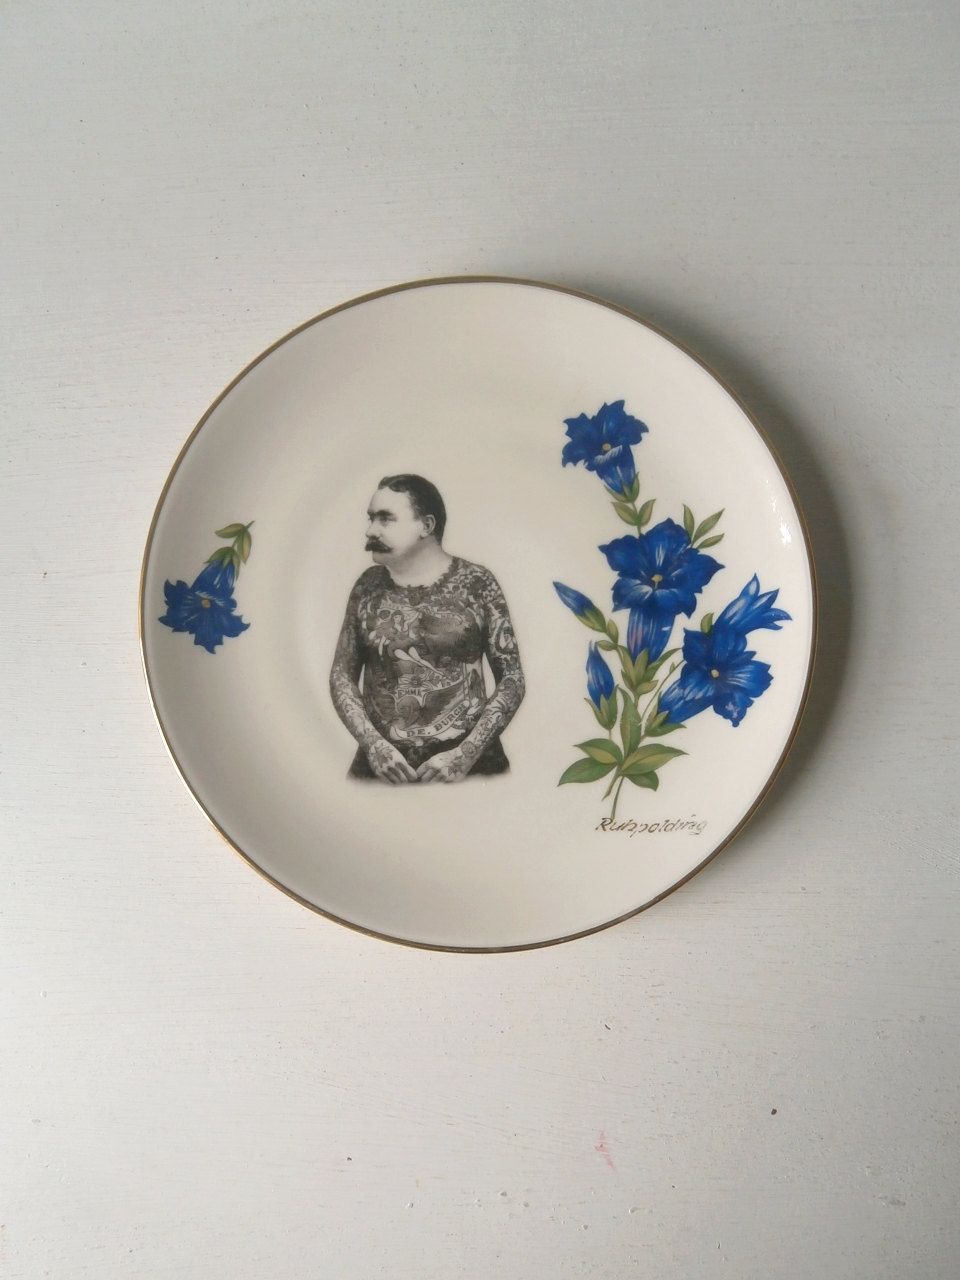 Vintage Victorian Moustache Tattooed Man Plate Altered Art. $22.00, via Etsy. These plates are so lovely, I keep getting distracted and just gazing at them...